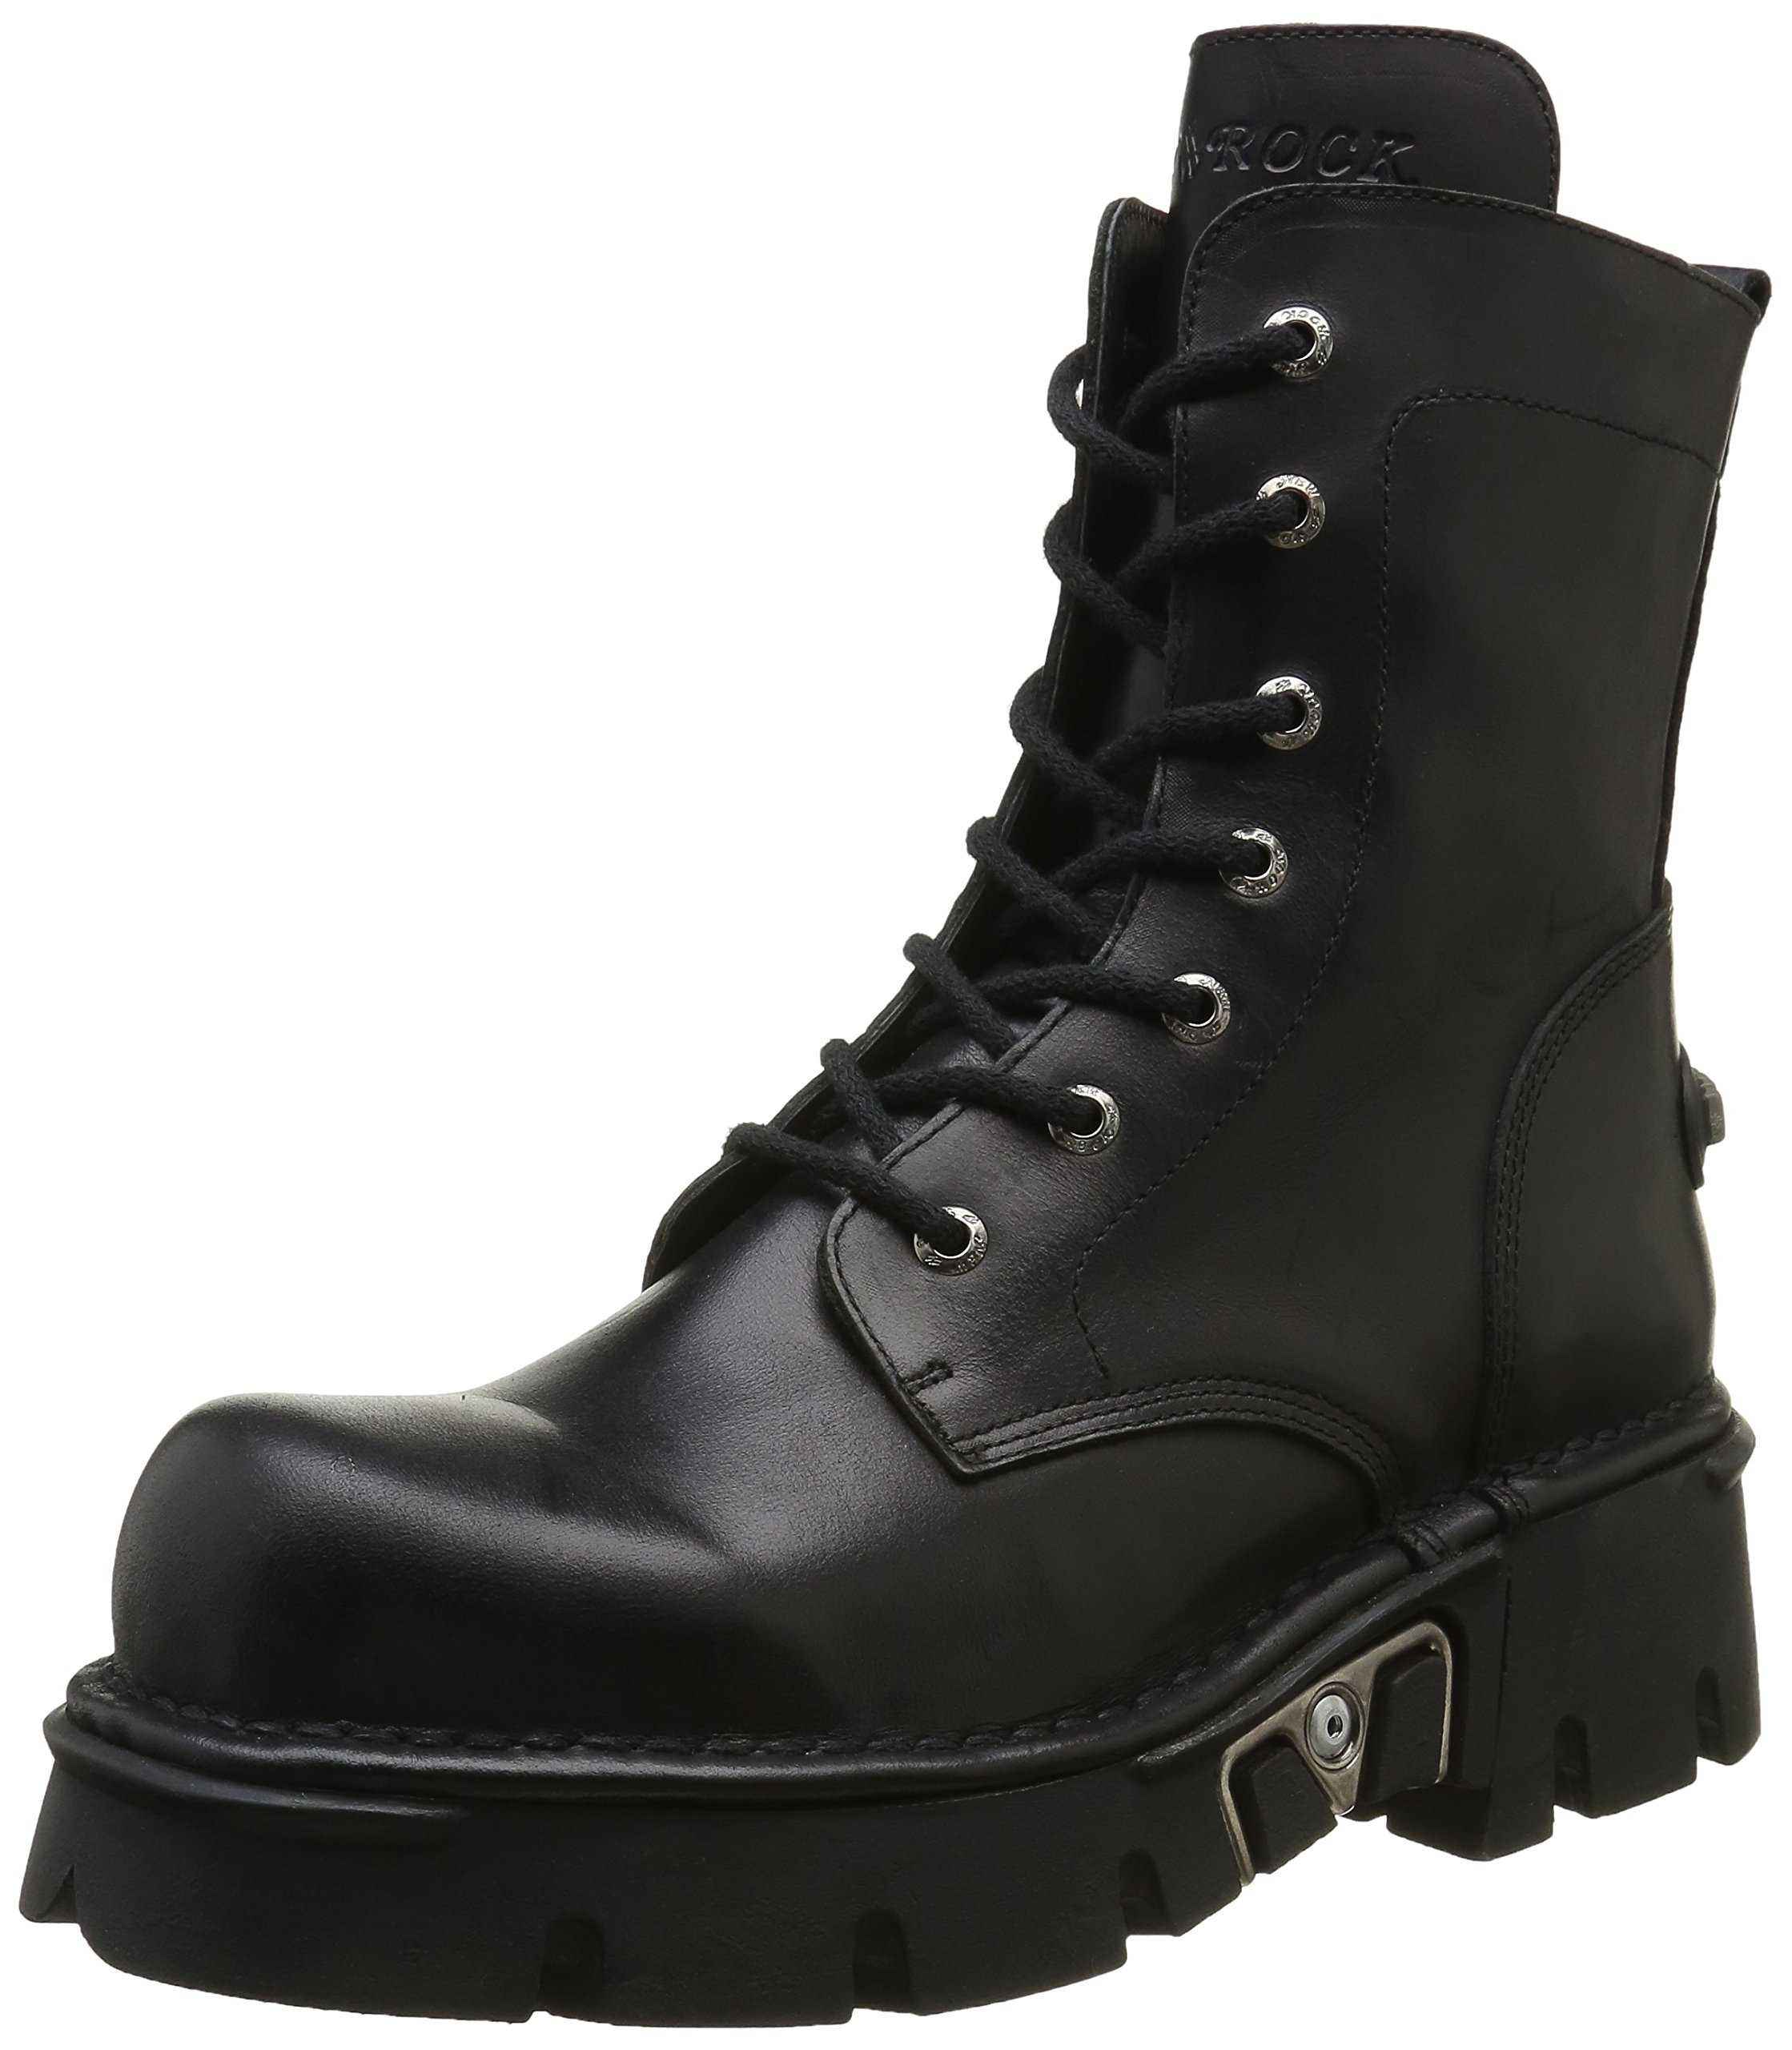 New Rock Shoes Unisex Black Leather Combat Boots With Heavy Soles UK 8.5/Black